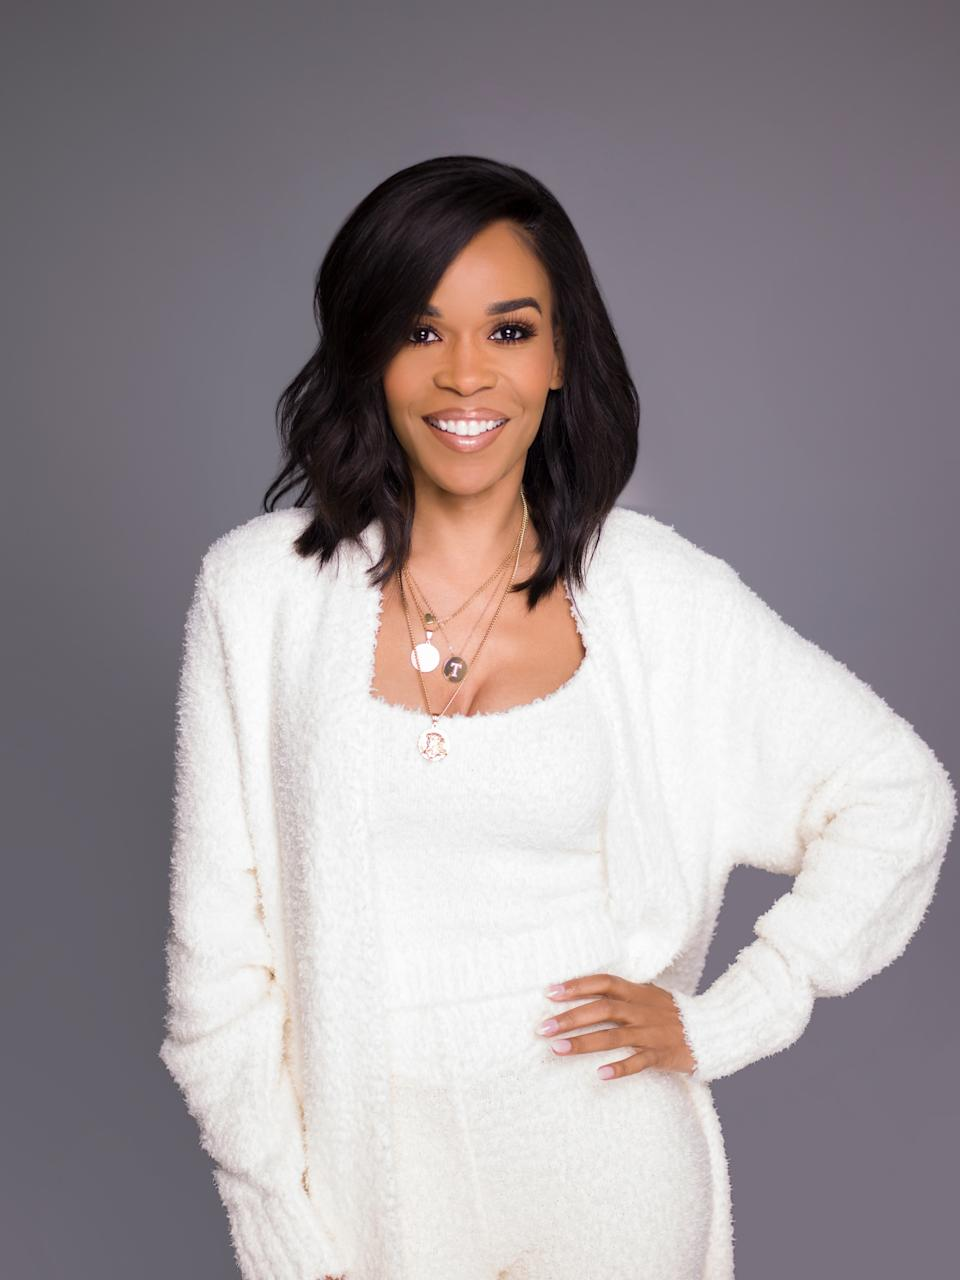 Michelle Williams is opening up about mental health in her new book,